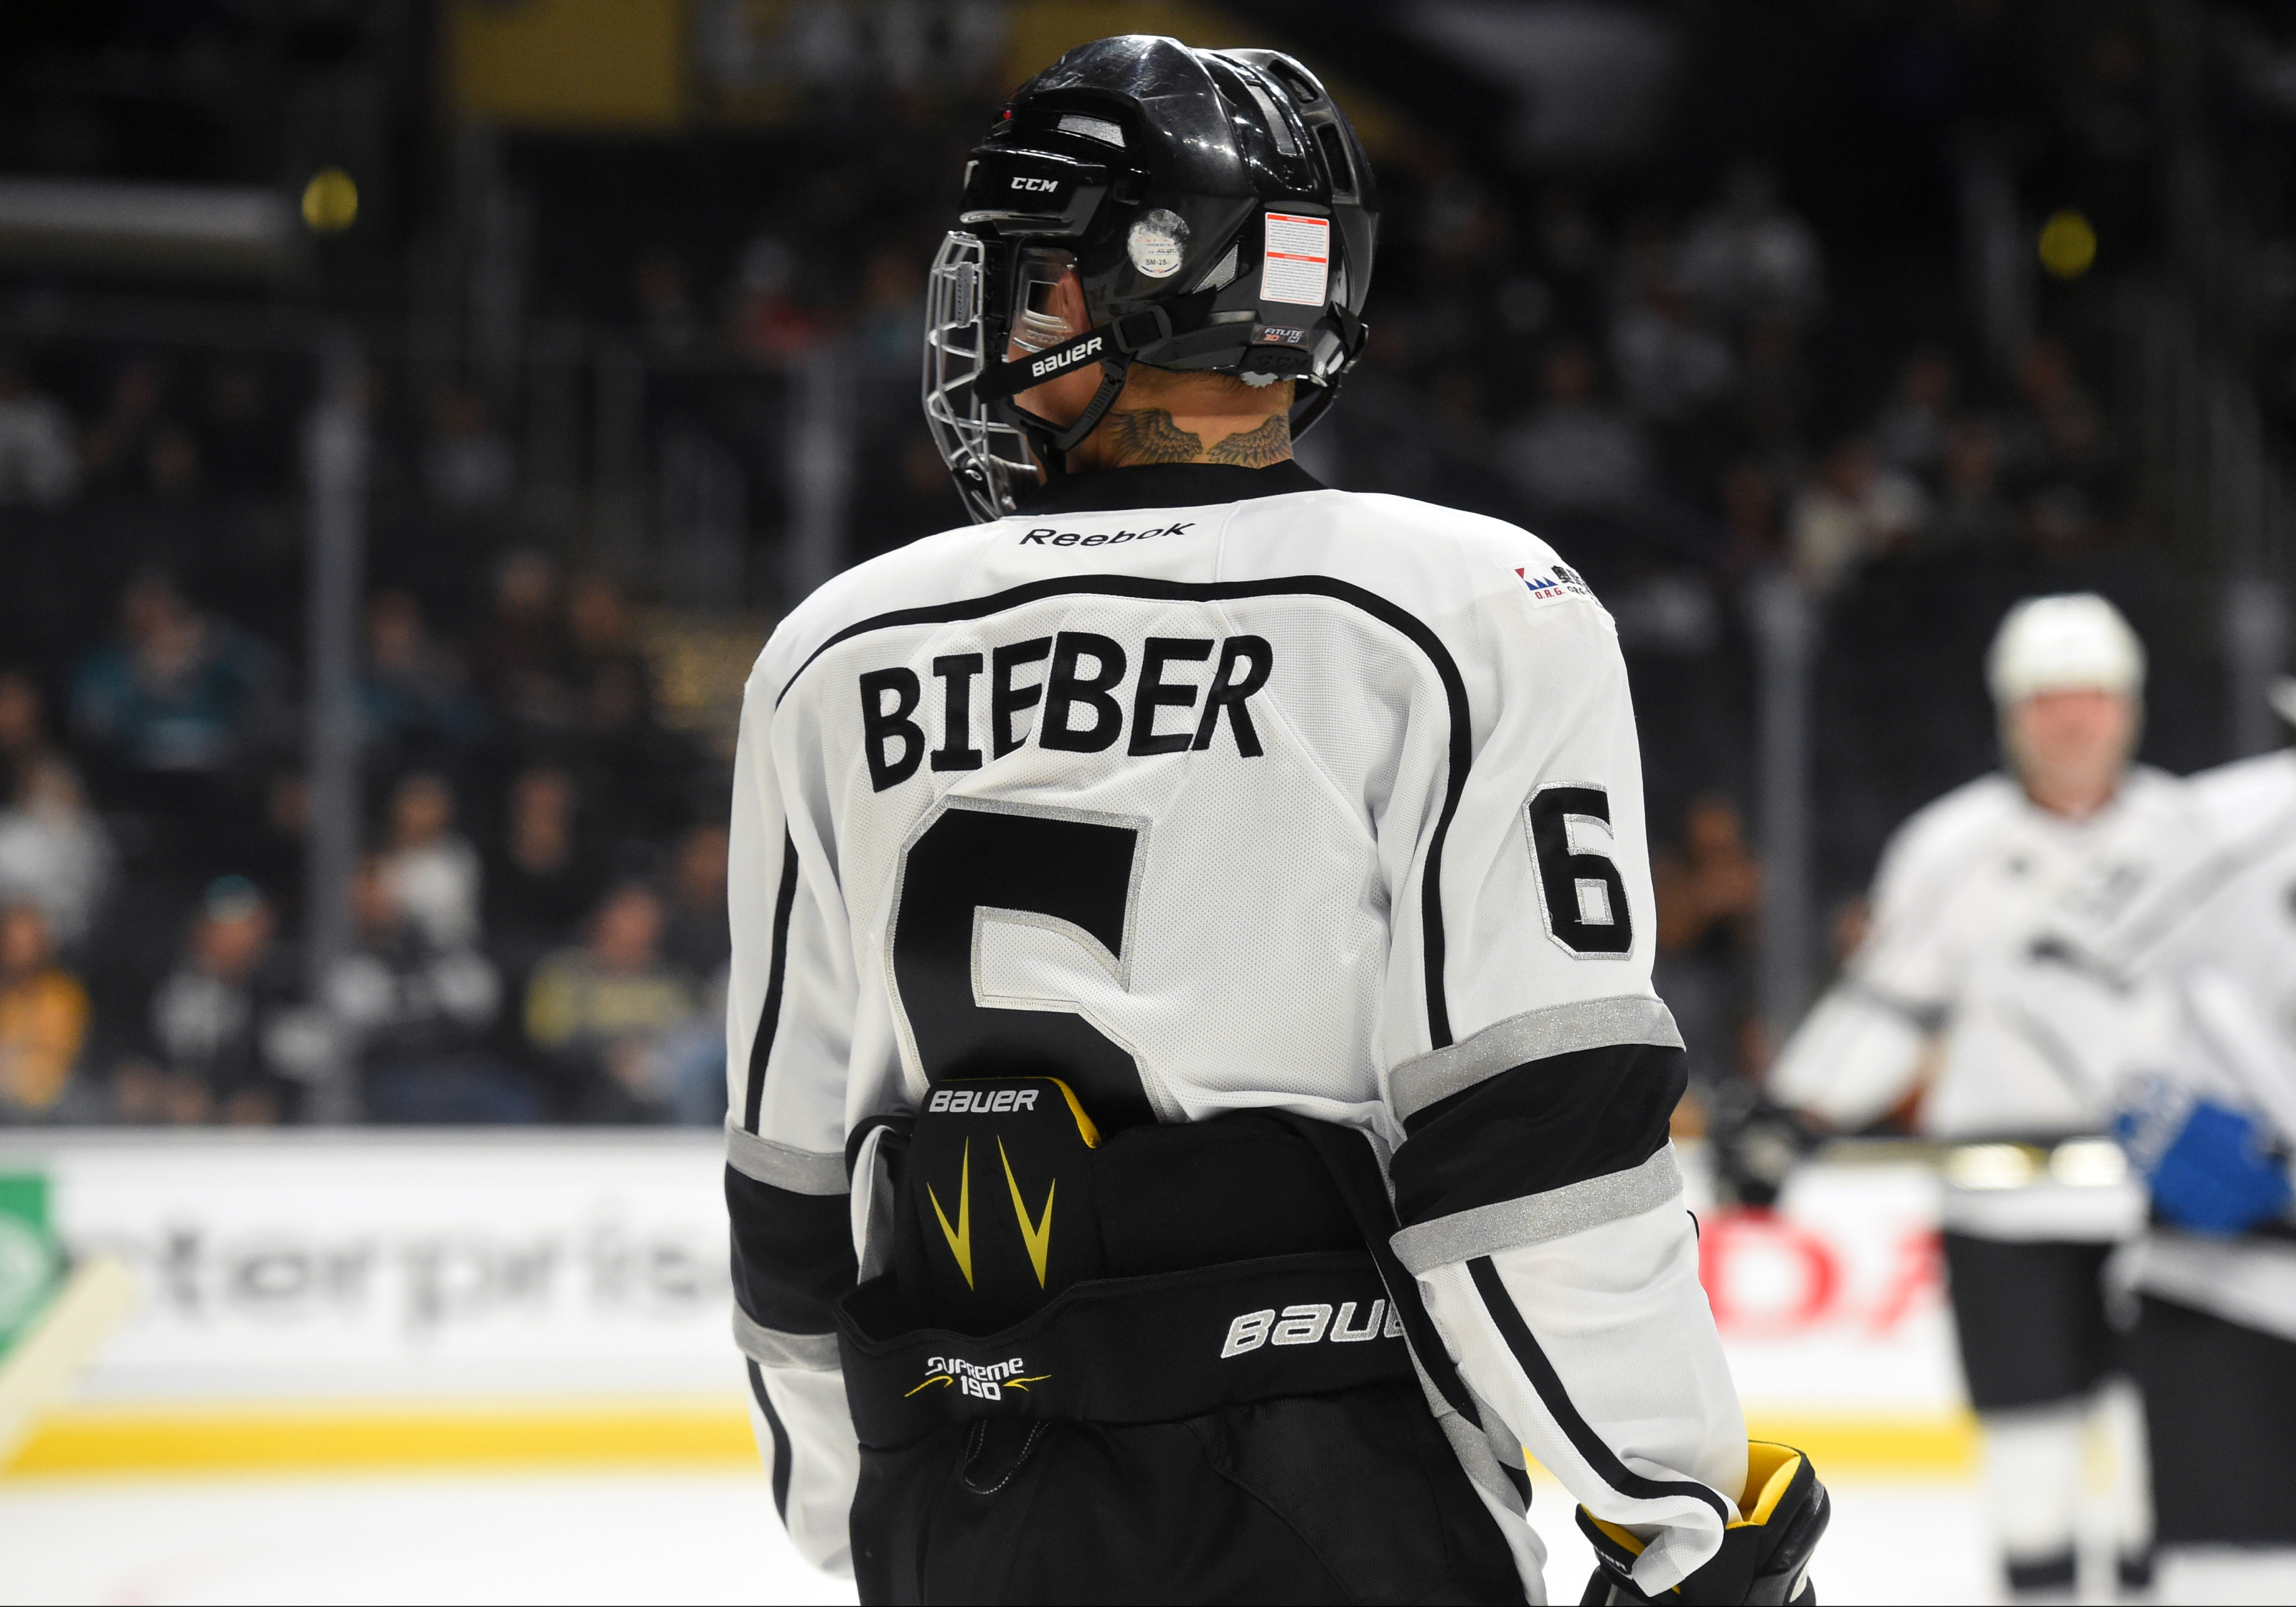 The Christmas Gift The Toronto Maple Leafs Gave Justin Bieber